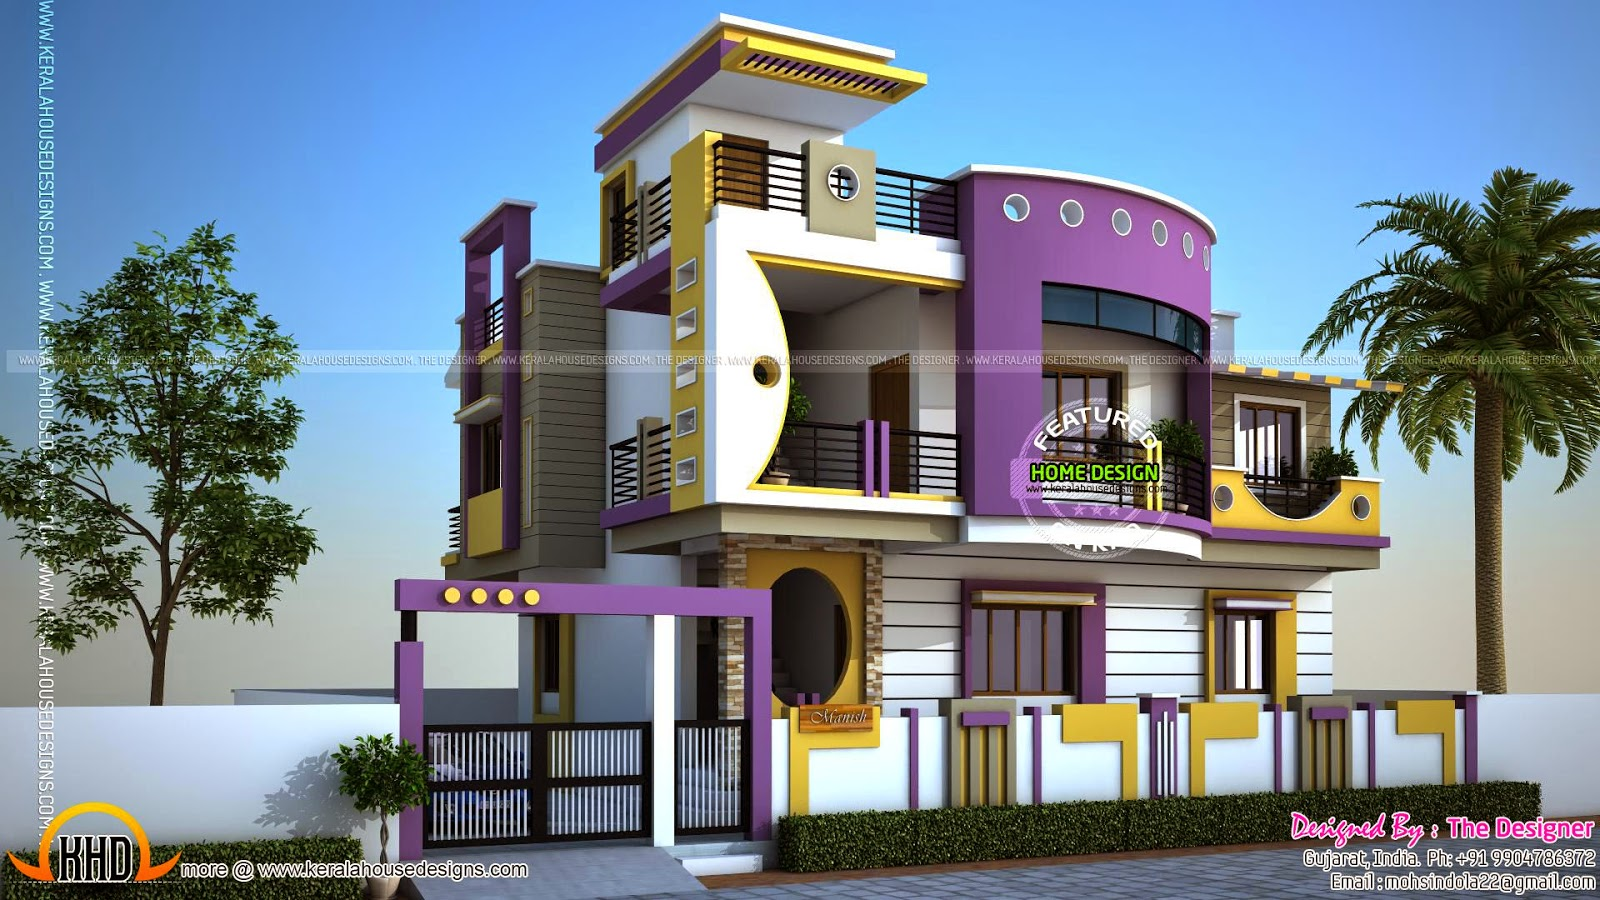 House exterior designs in contemporary style kerala home Small house indian style